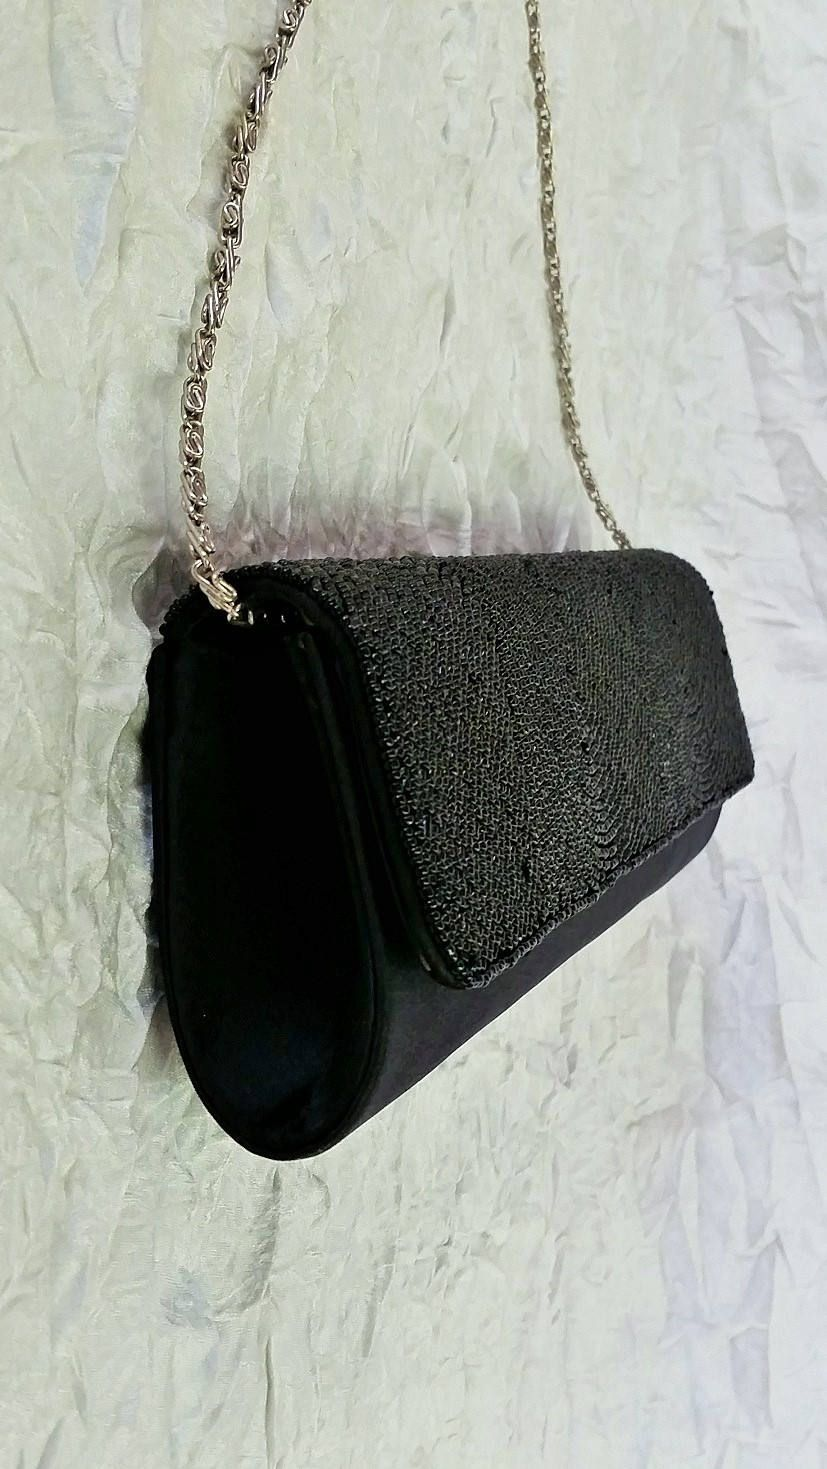 Structured Evening Bag Purse Black Beads Satin Silver Wristlet Chain